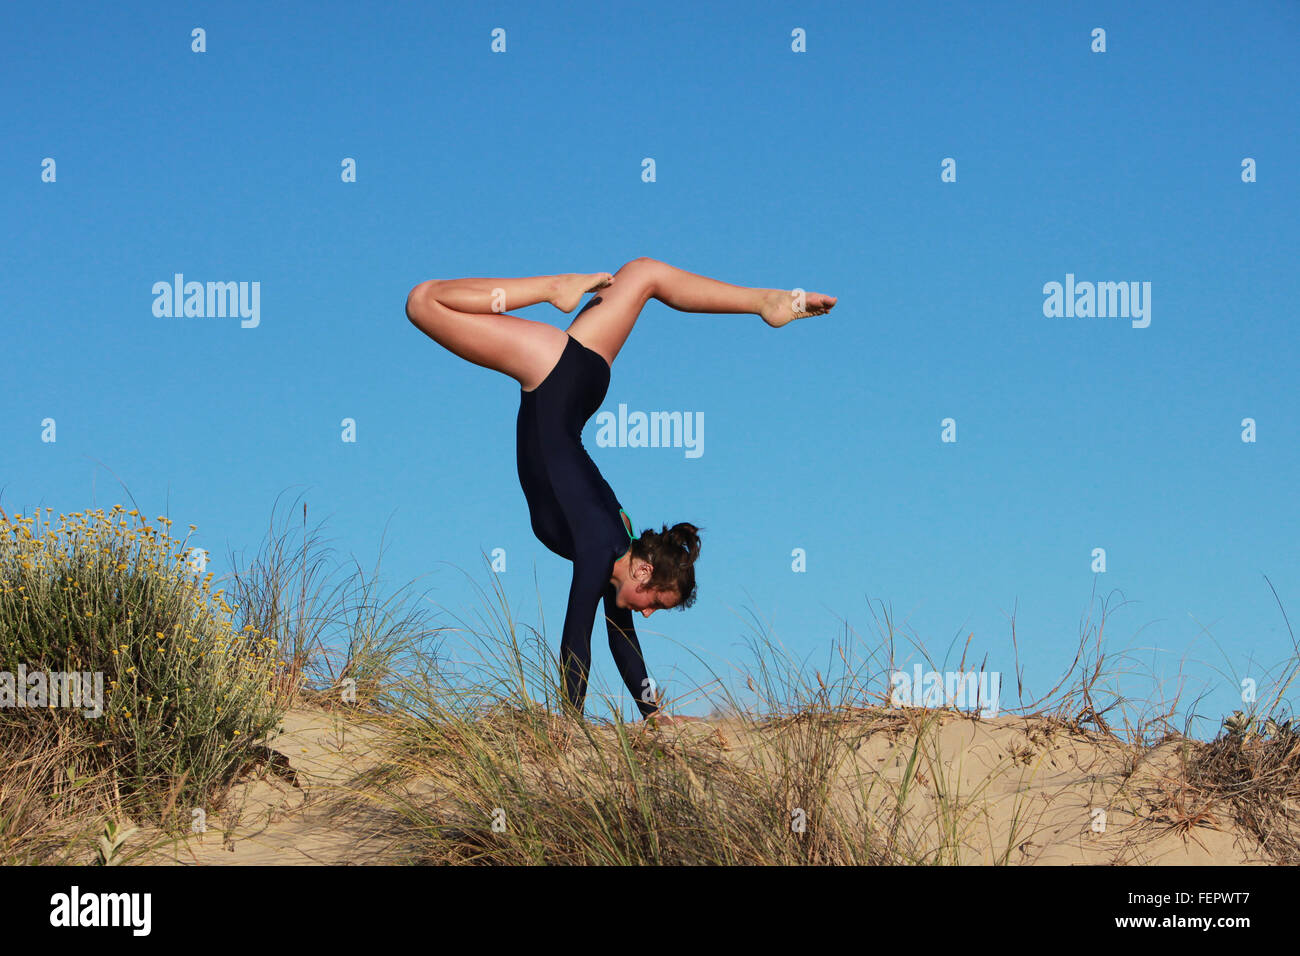 A gymnast is doing her routine on the beach in South Africa. - Stock Image